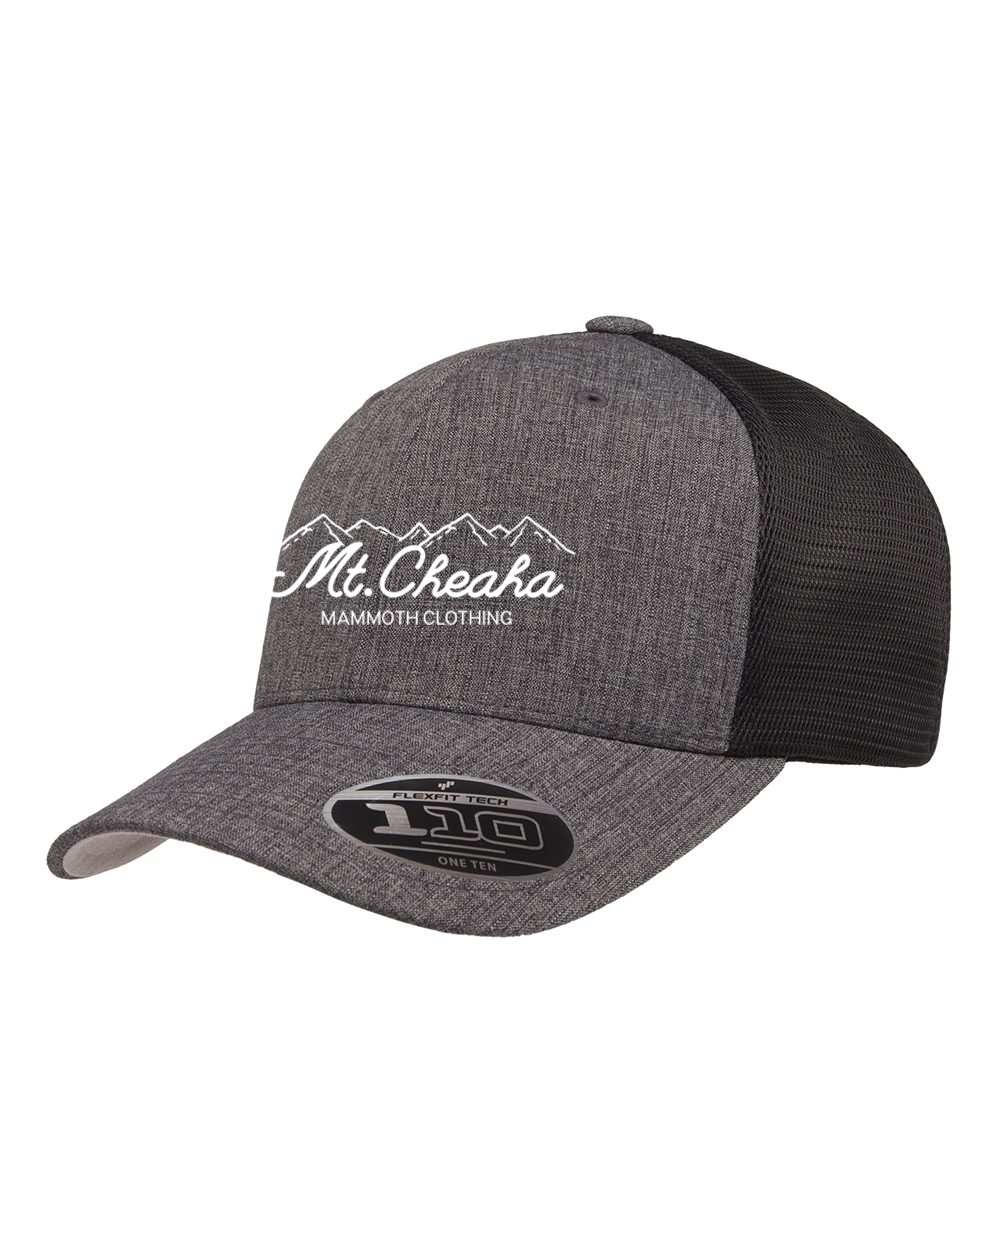 Mt Cheaha Trucker